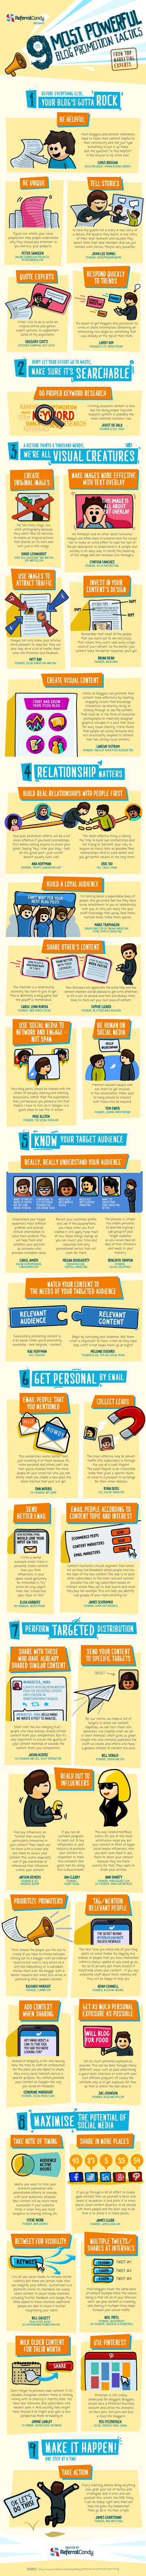 9 Essential Tips For Promoting Your Blog Properly Infographic